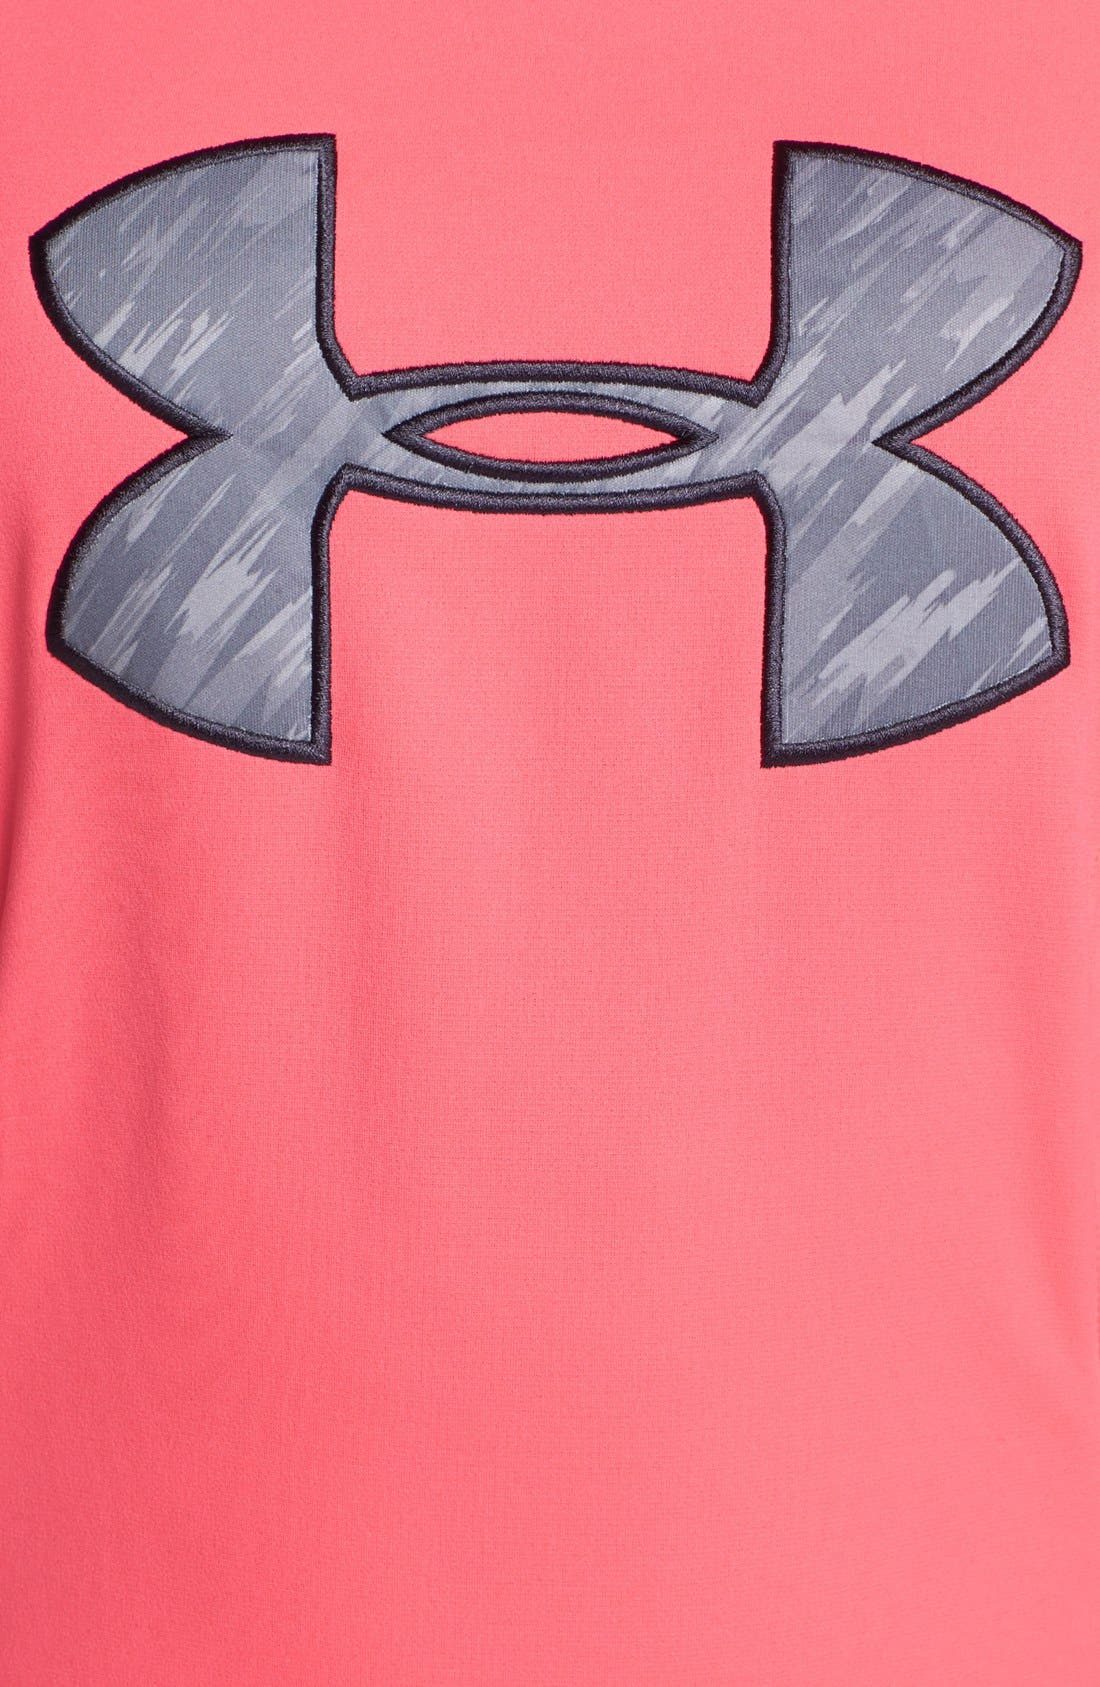 Alternate Image 3  - Under Armour 'Big Logo' Hoodie